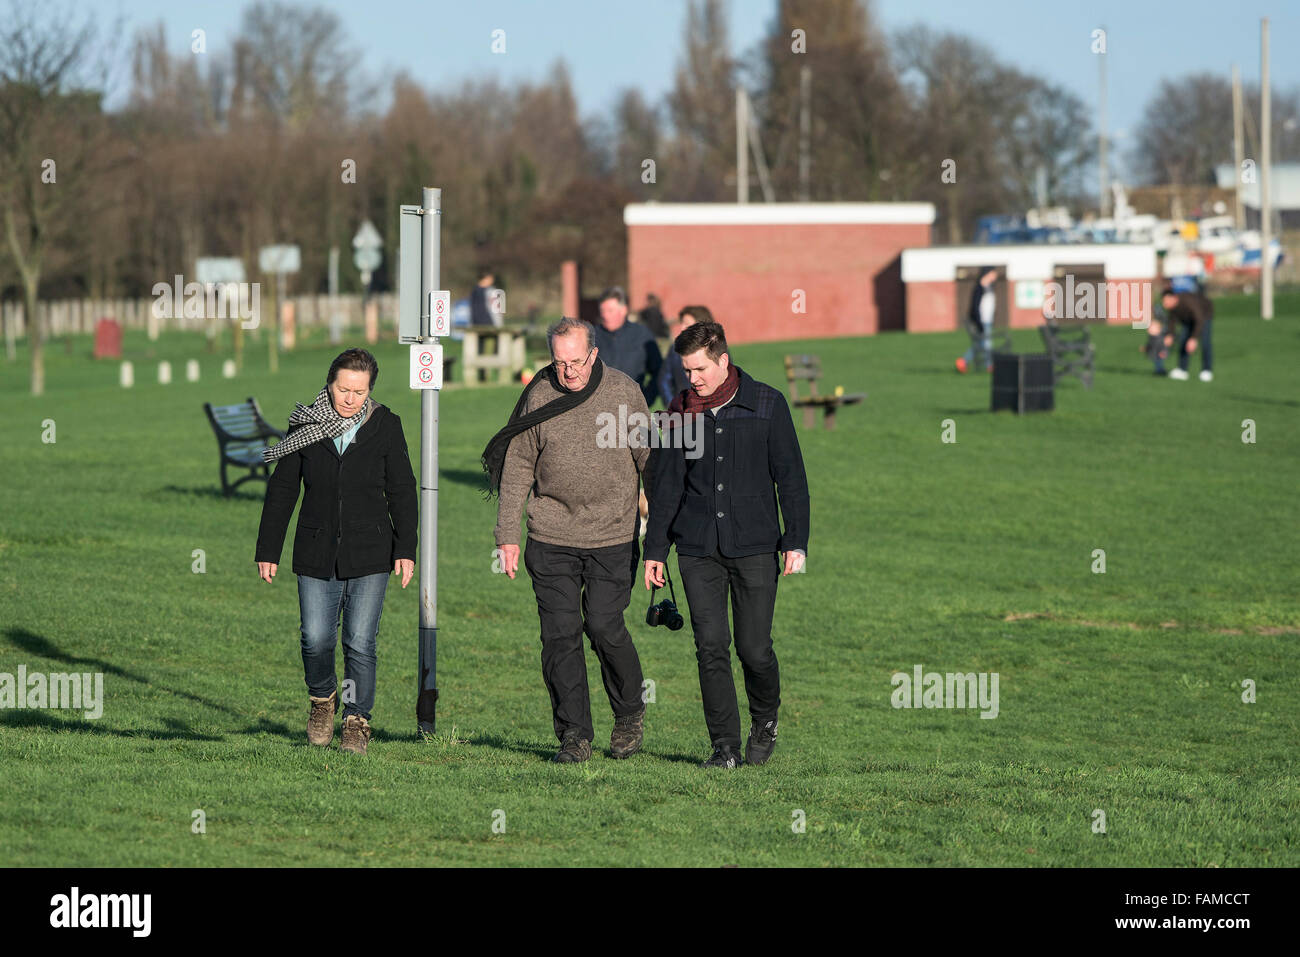 People walking in the park near East Beach in Shoeburyness, Essex, UK. - Stock Image